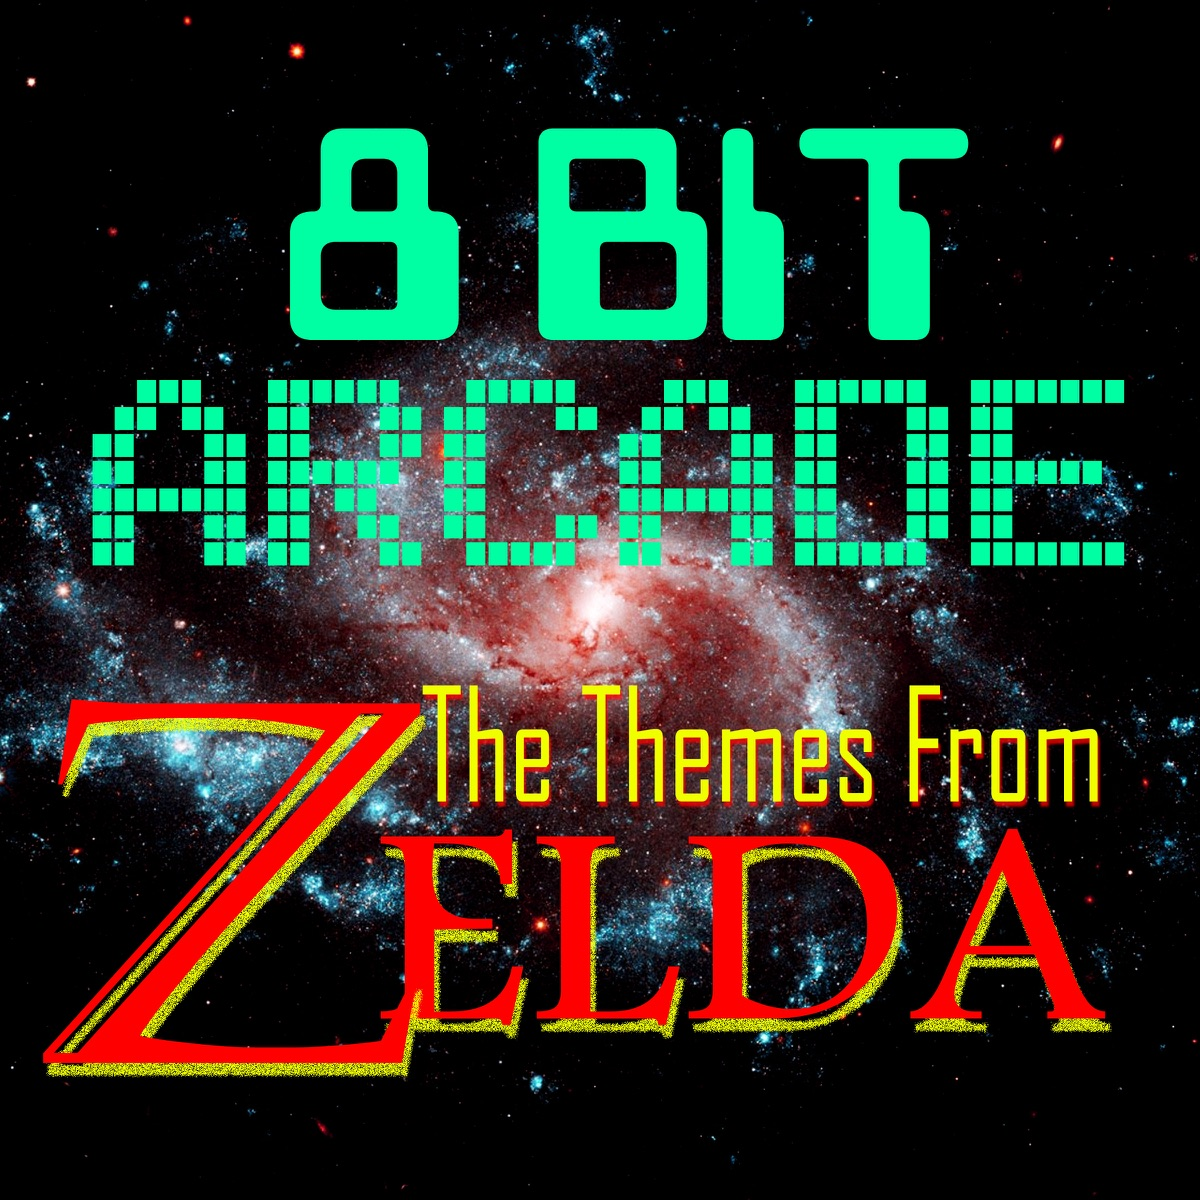 The Themes From Zelda 8-Bit Arcade CD cover